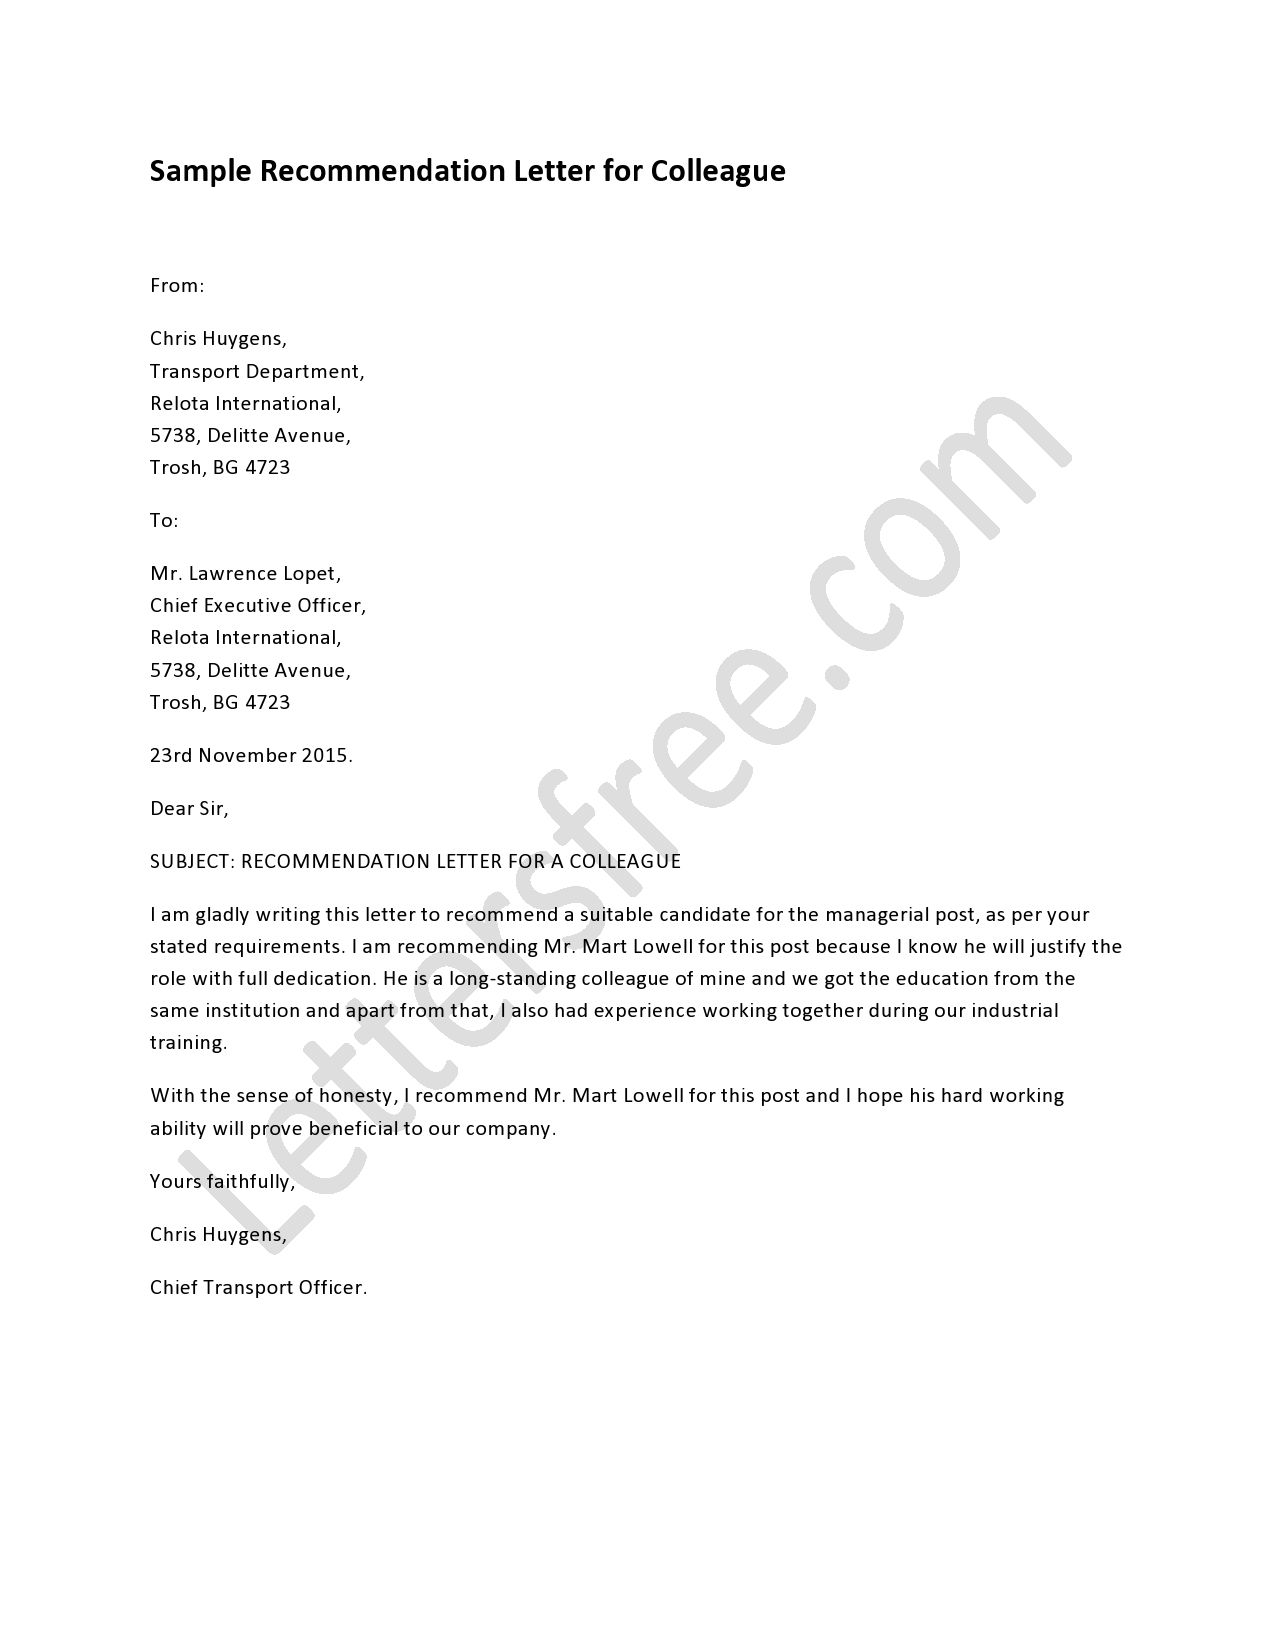 Example Of Recommendation Letter For Colleague   Sample Recommendation  Letter, How To Write A Recommendation Letter, Writing Tips, Template U0026  Format